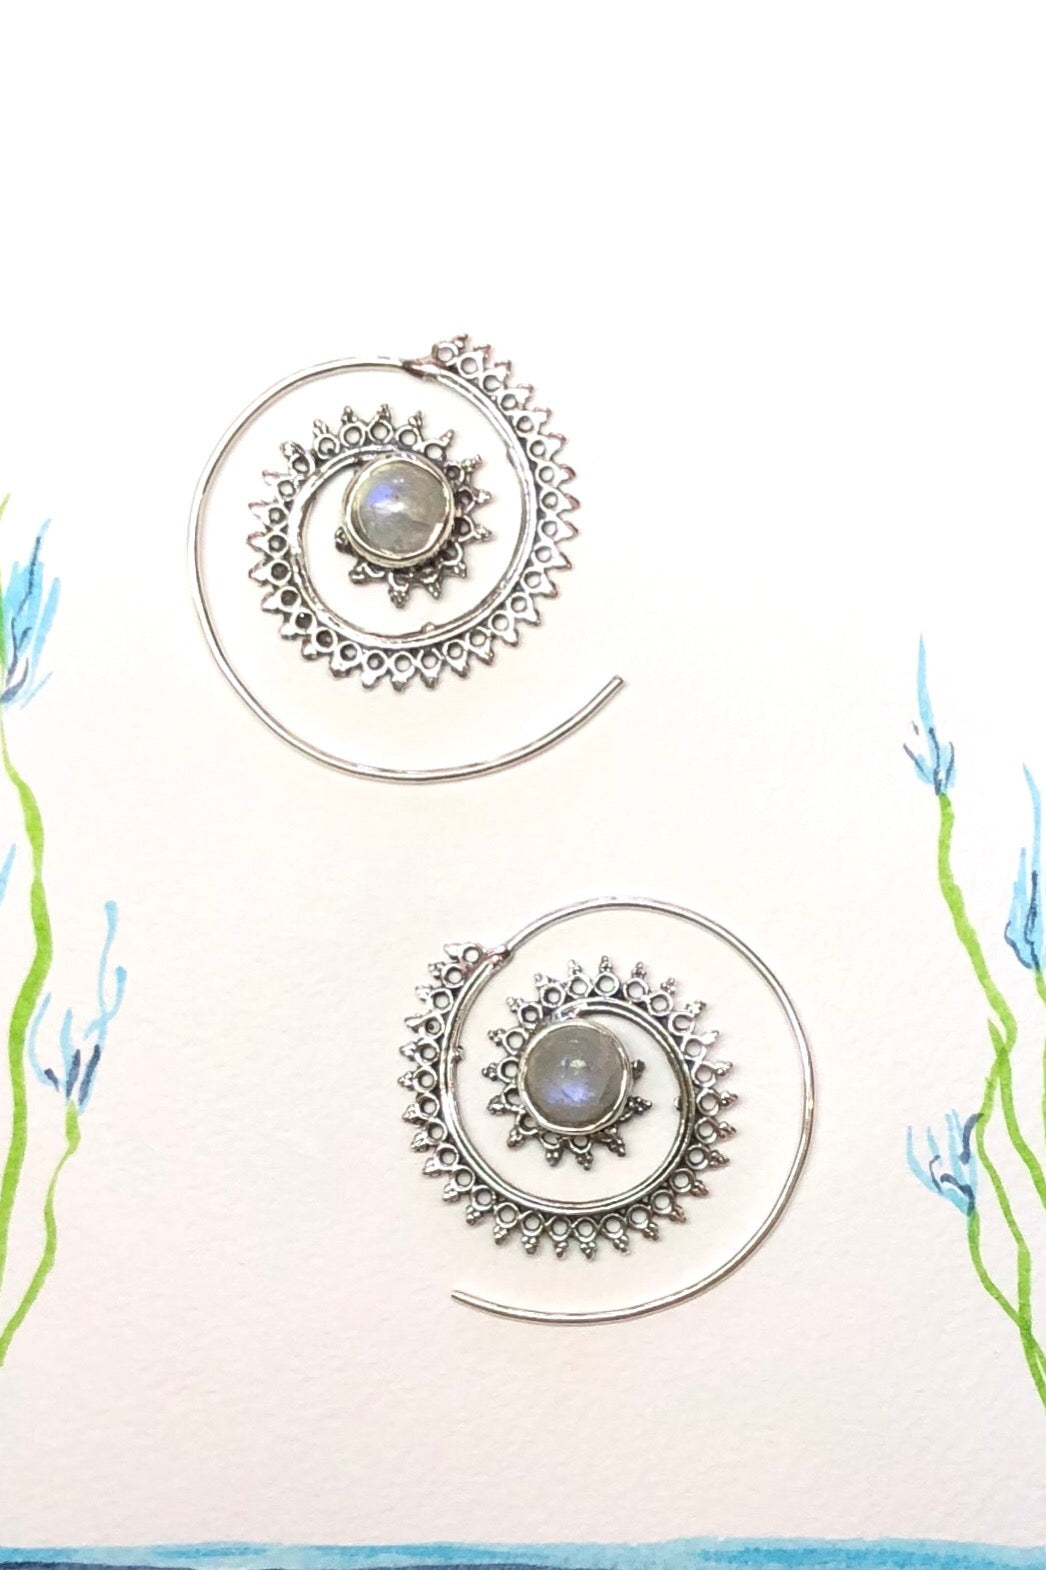 An iridescent moonstone sits at the centre of these unique silver swirl hoops.